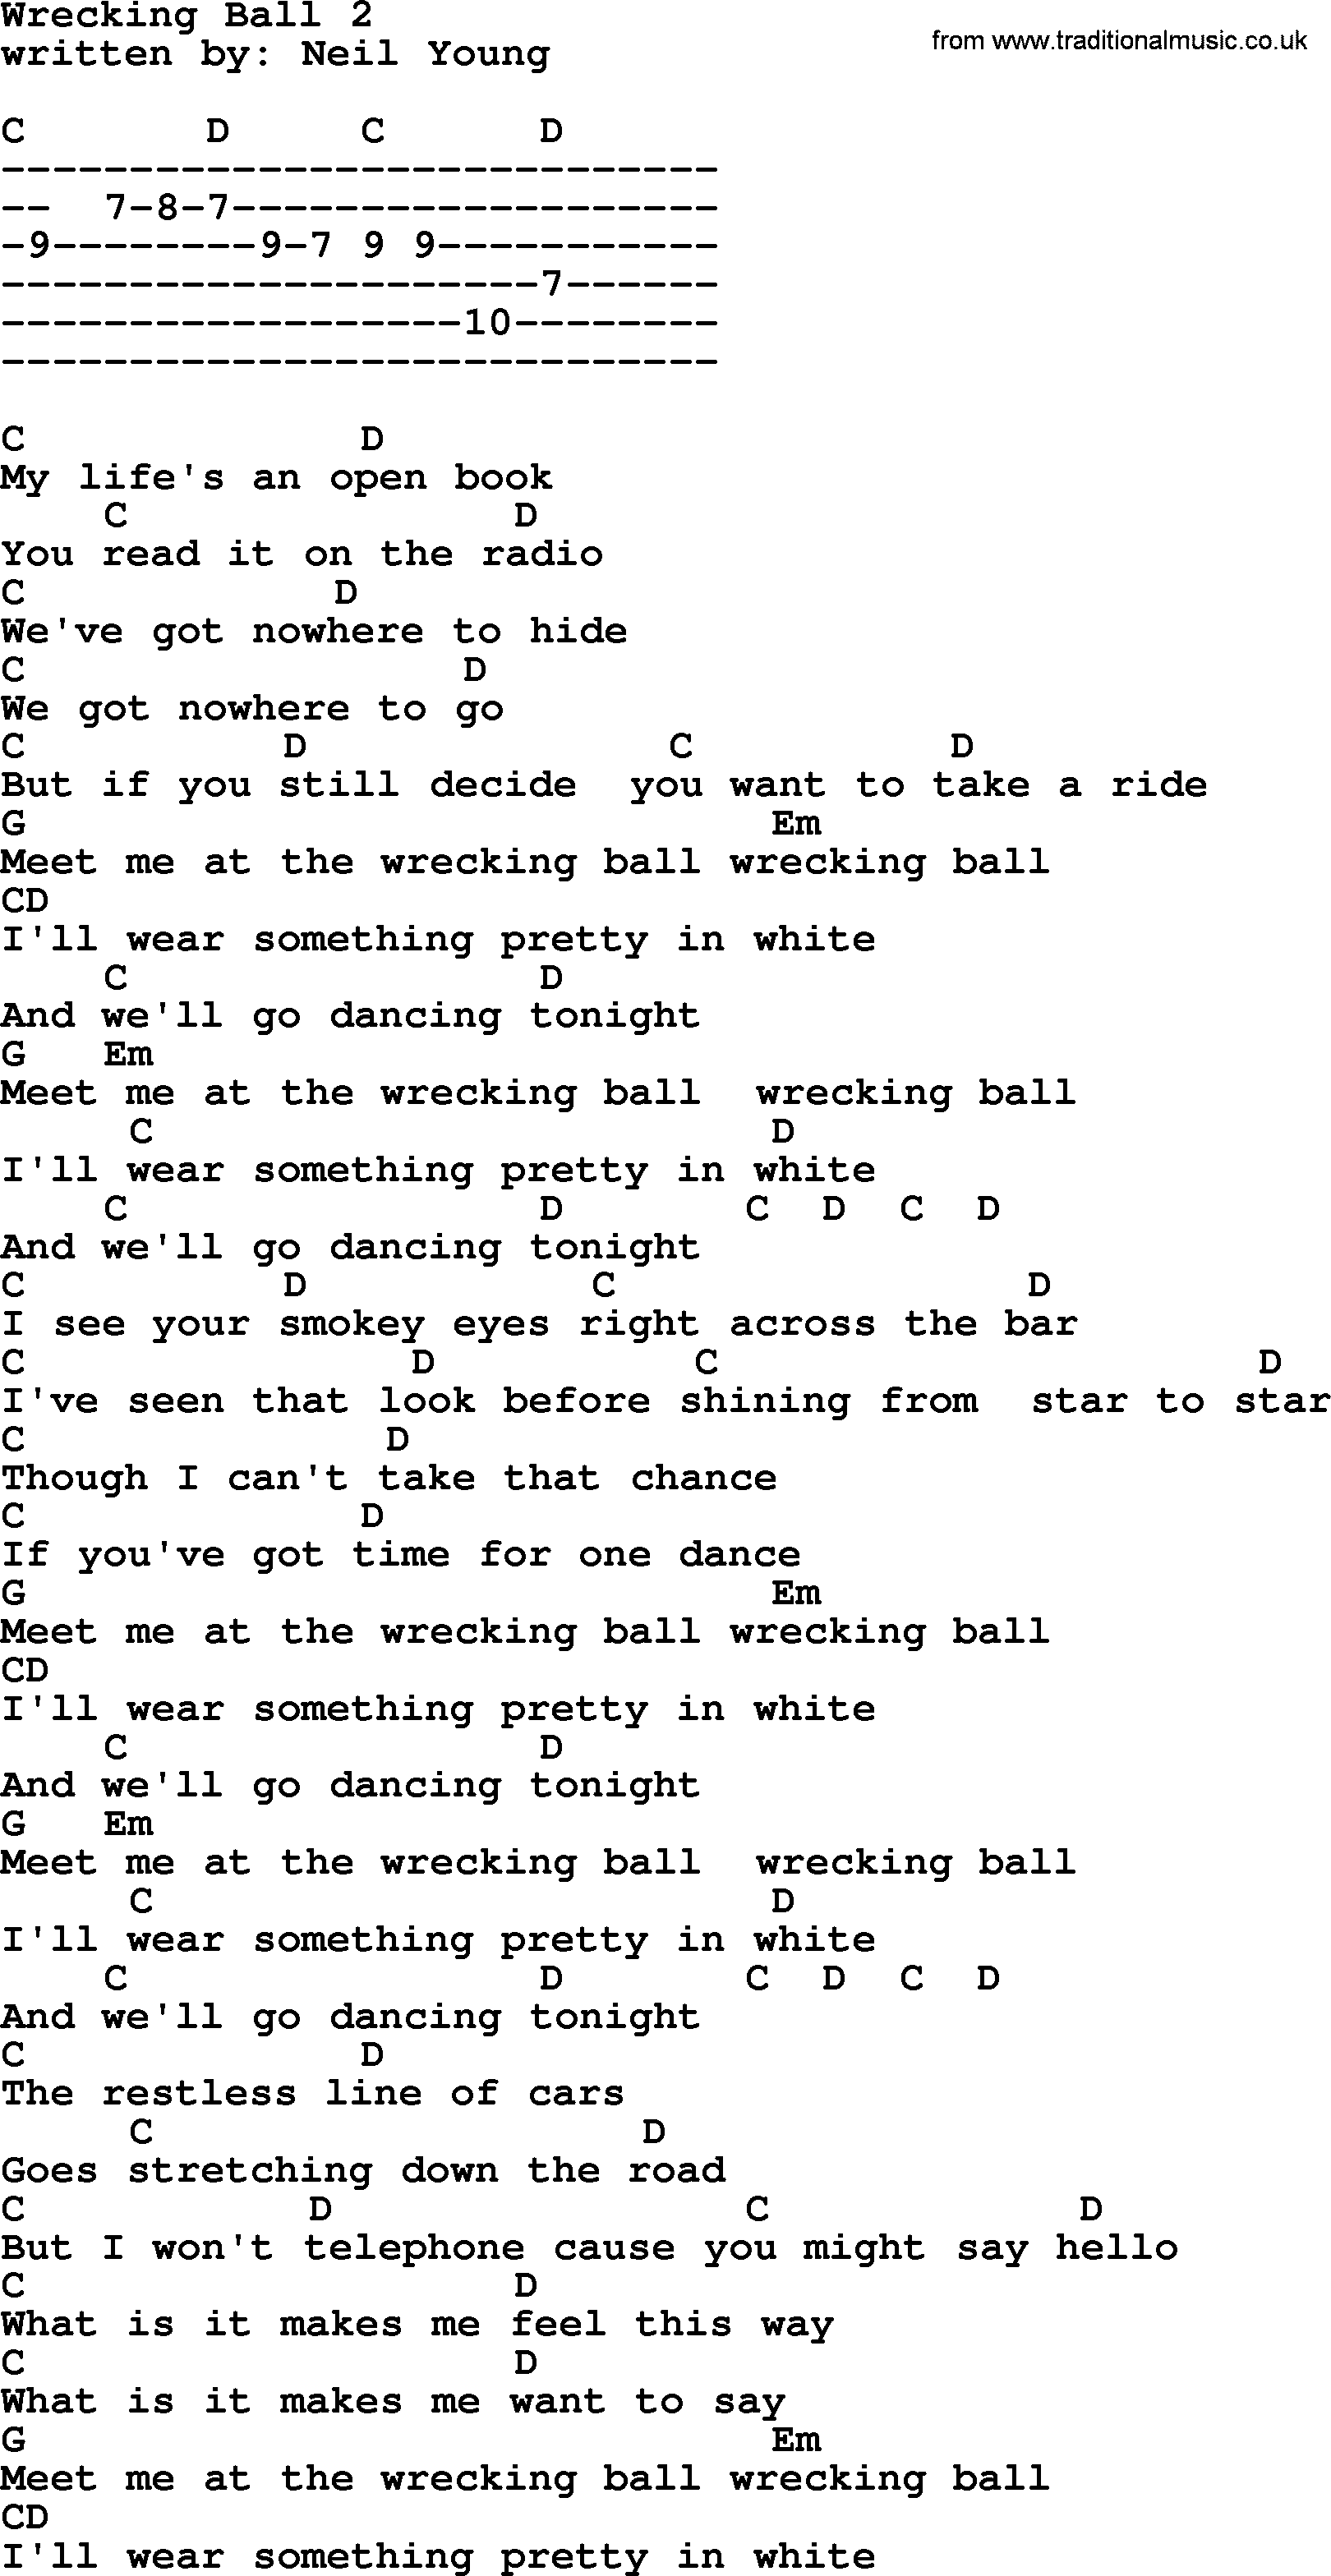 Emmylou Harris song: Wrecking Ball 2, lyrics and chords